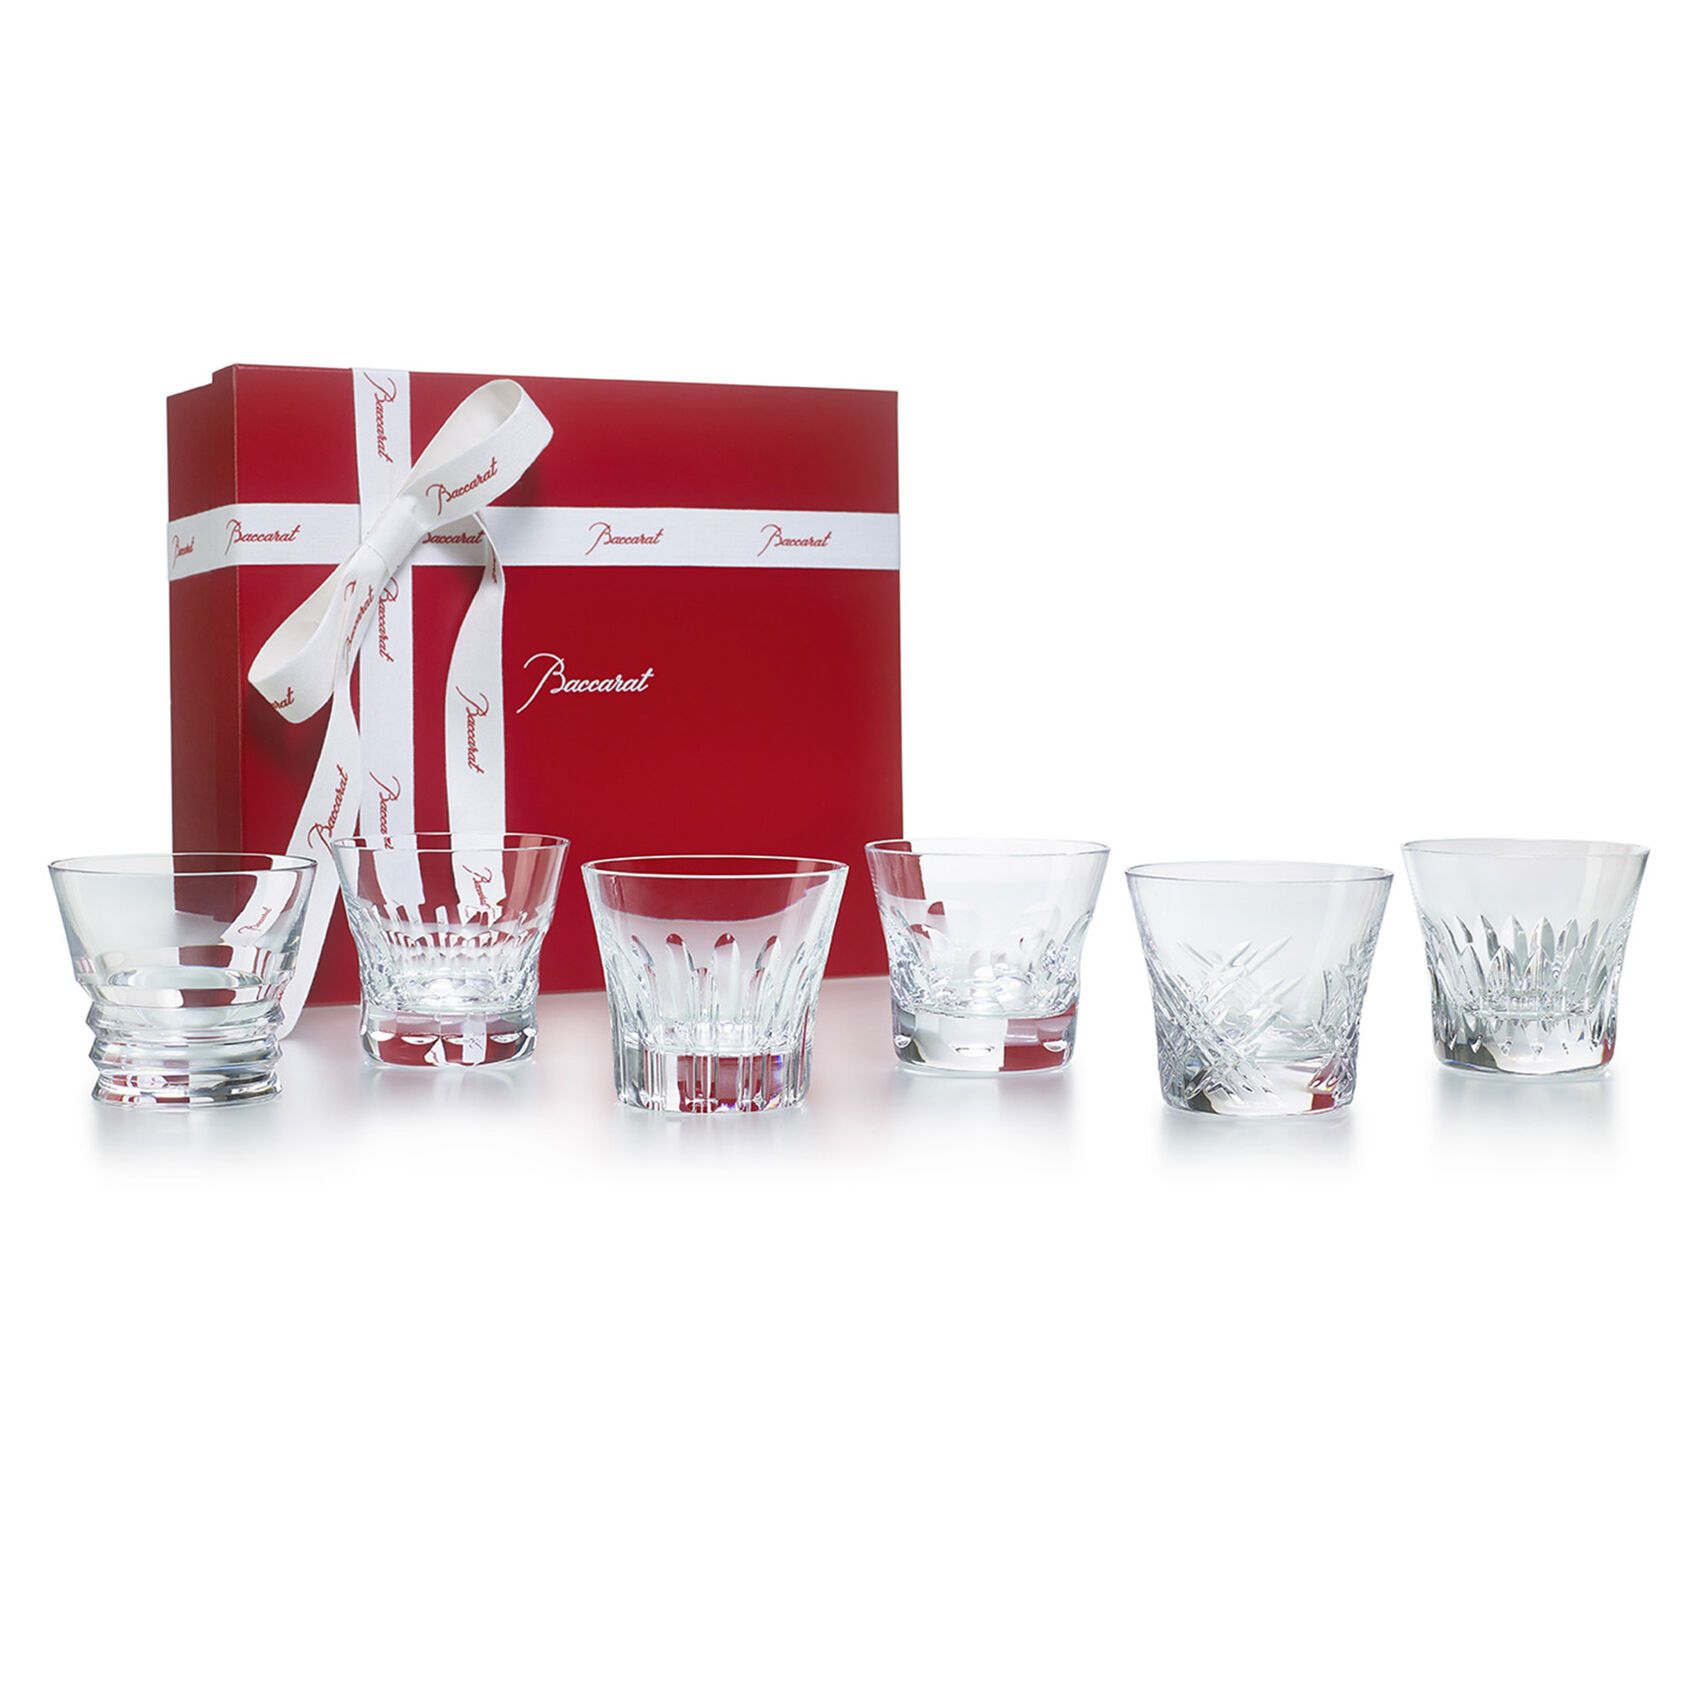 Set de copos Everyday x6, Baccarat, 2809854